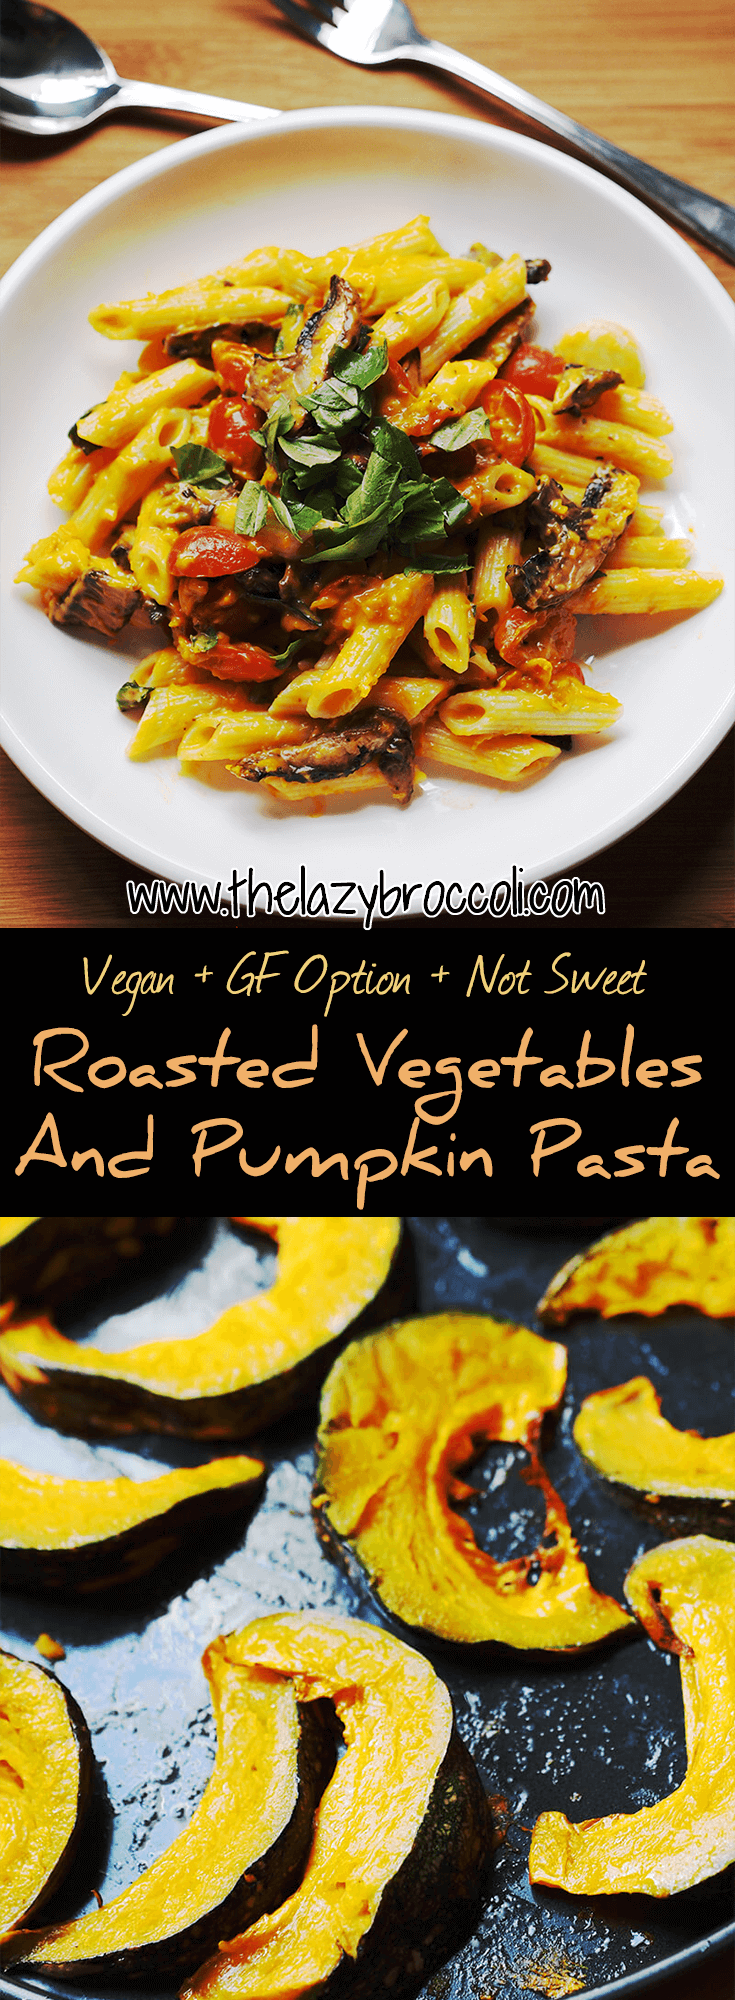 Sick of cloyingly sweet pasta? Fret not because this Roasted Vegetables and Pumpkin Pasta is savory + creamy + EASY!